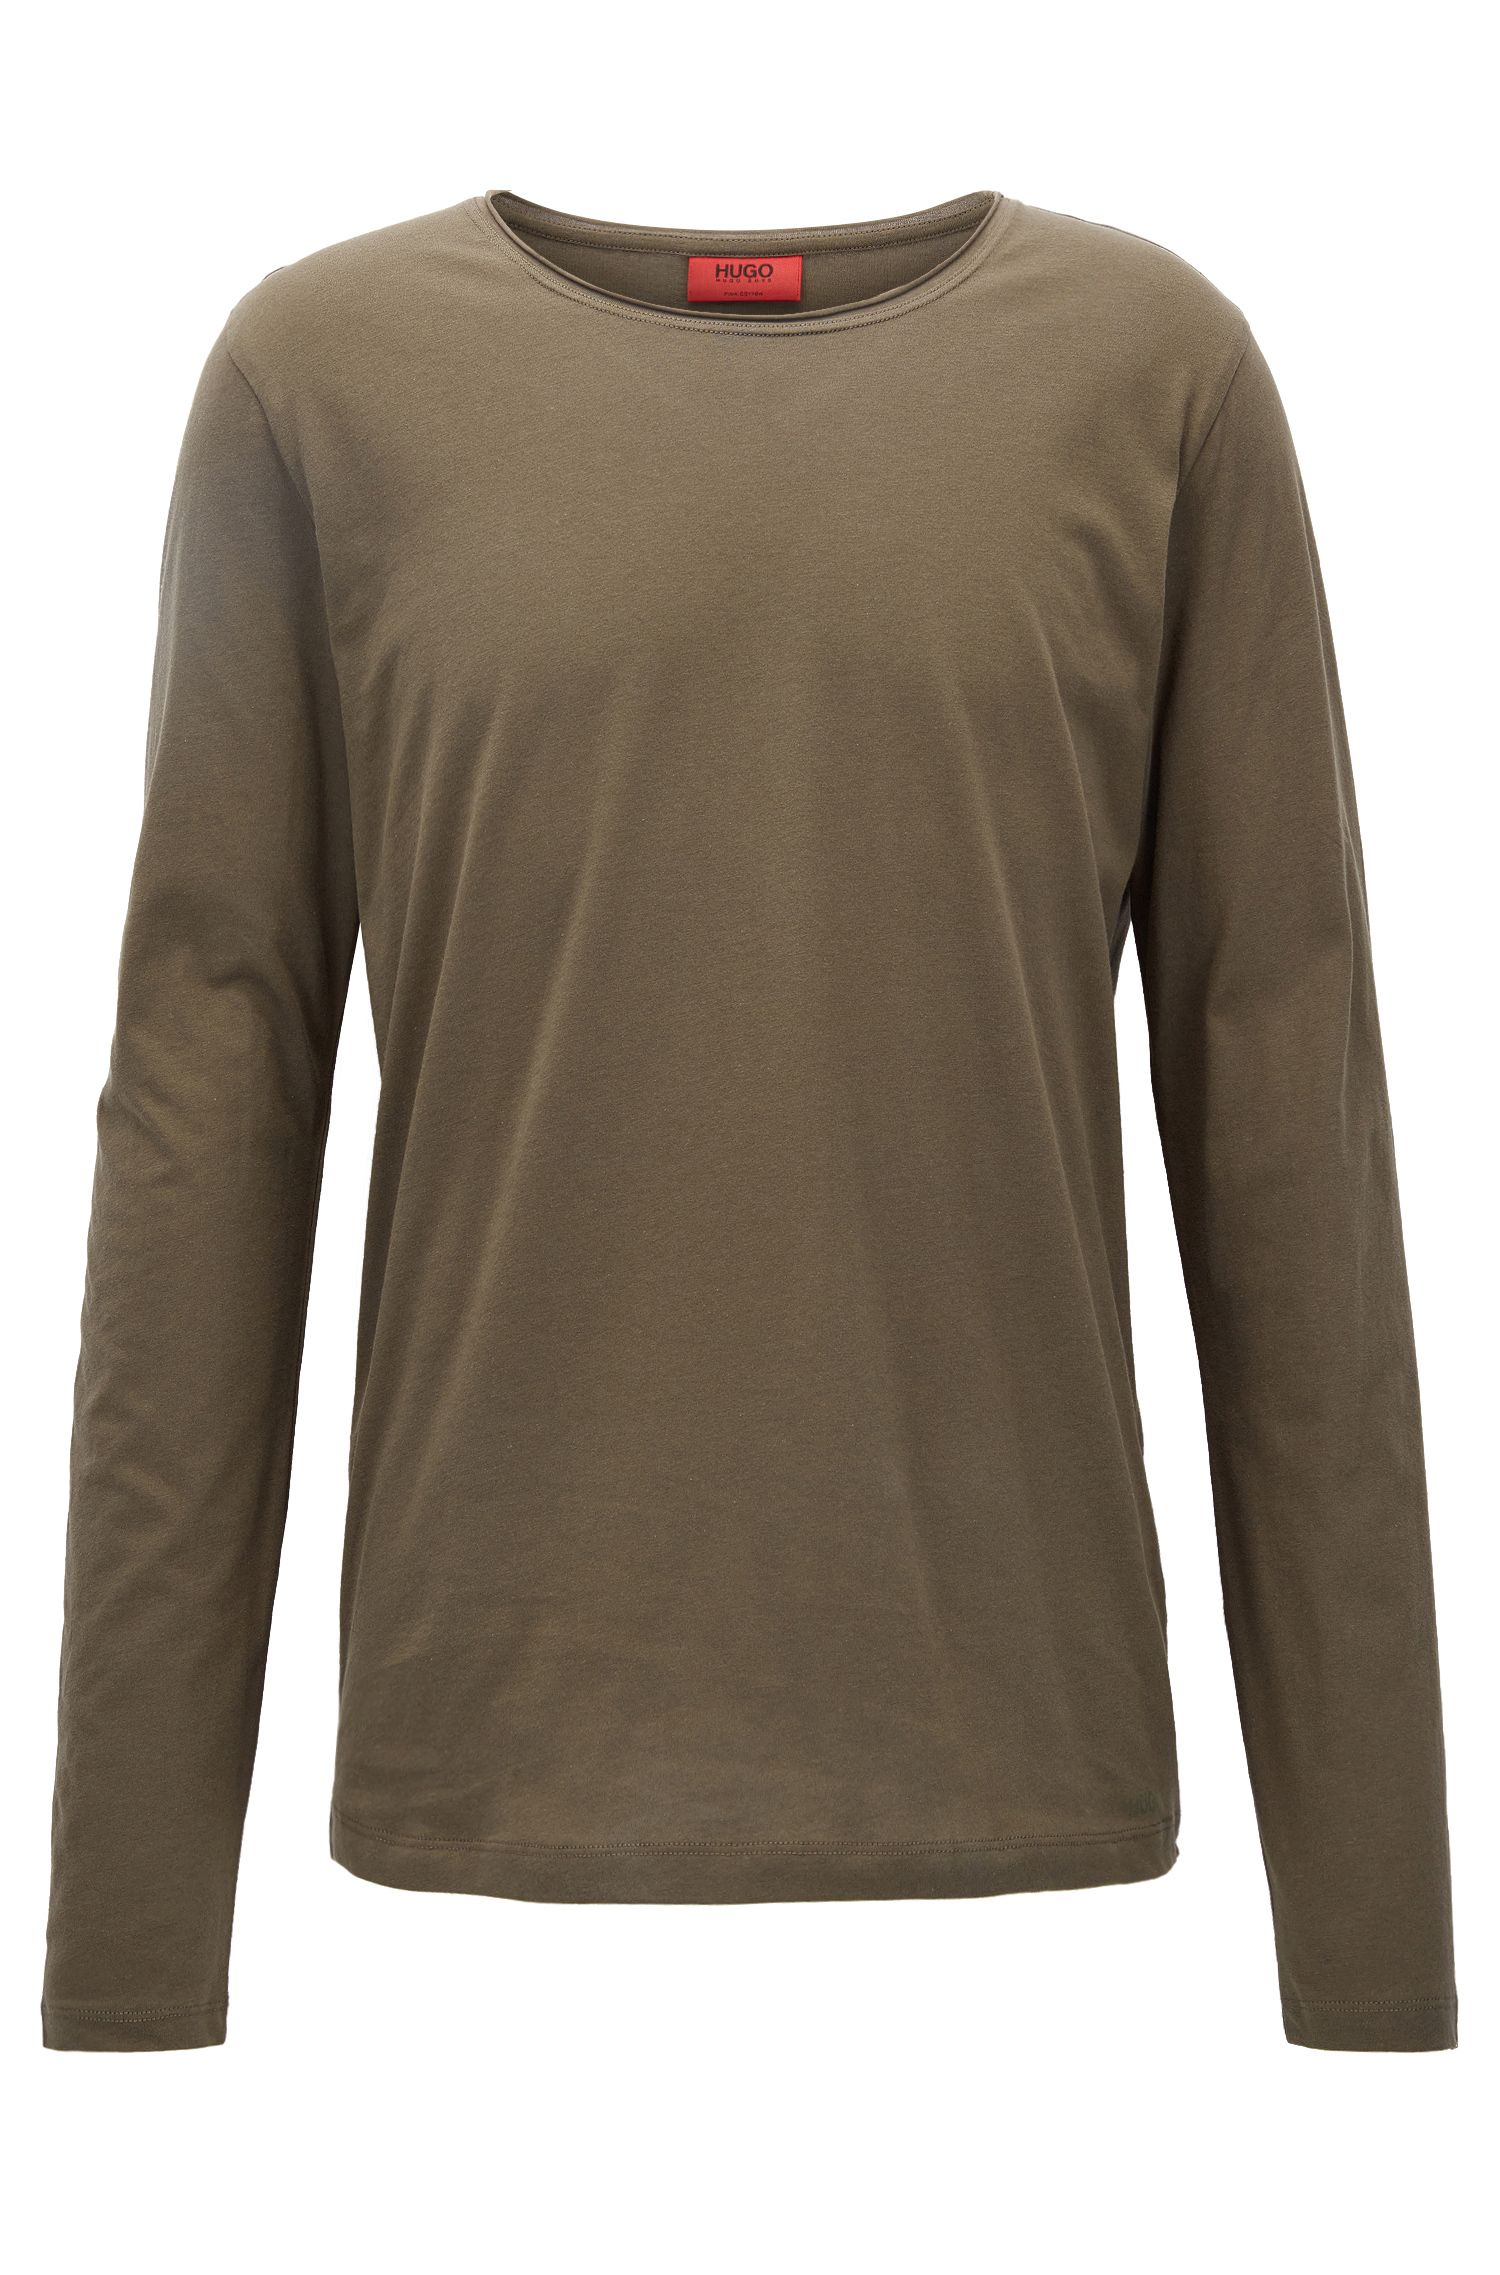 Relaxed-fit long-sleeved T-shirt in supima cotton